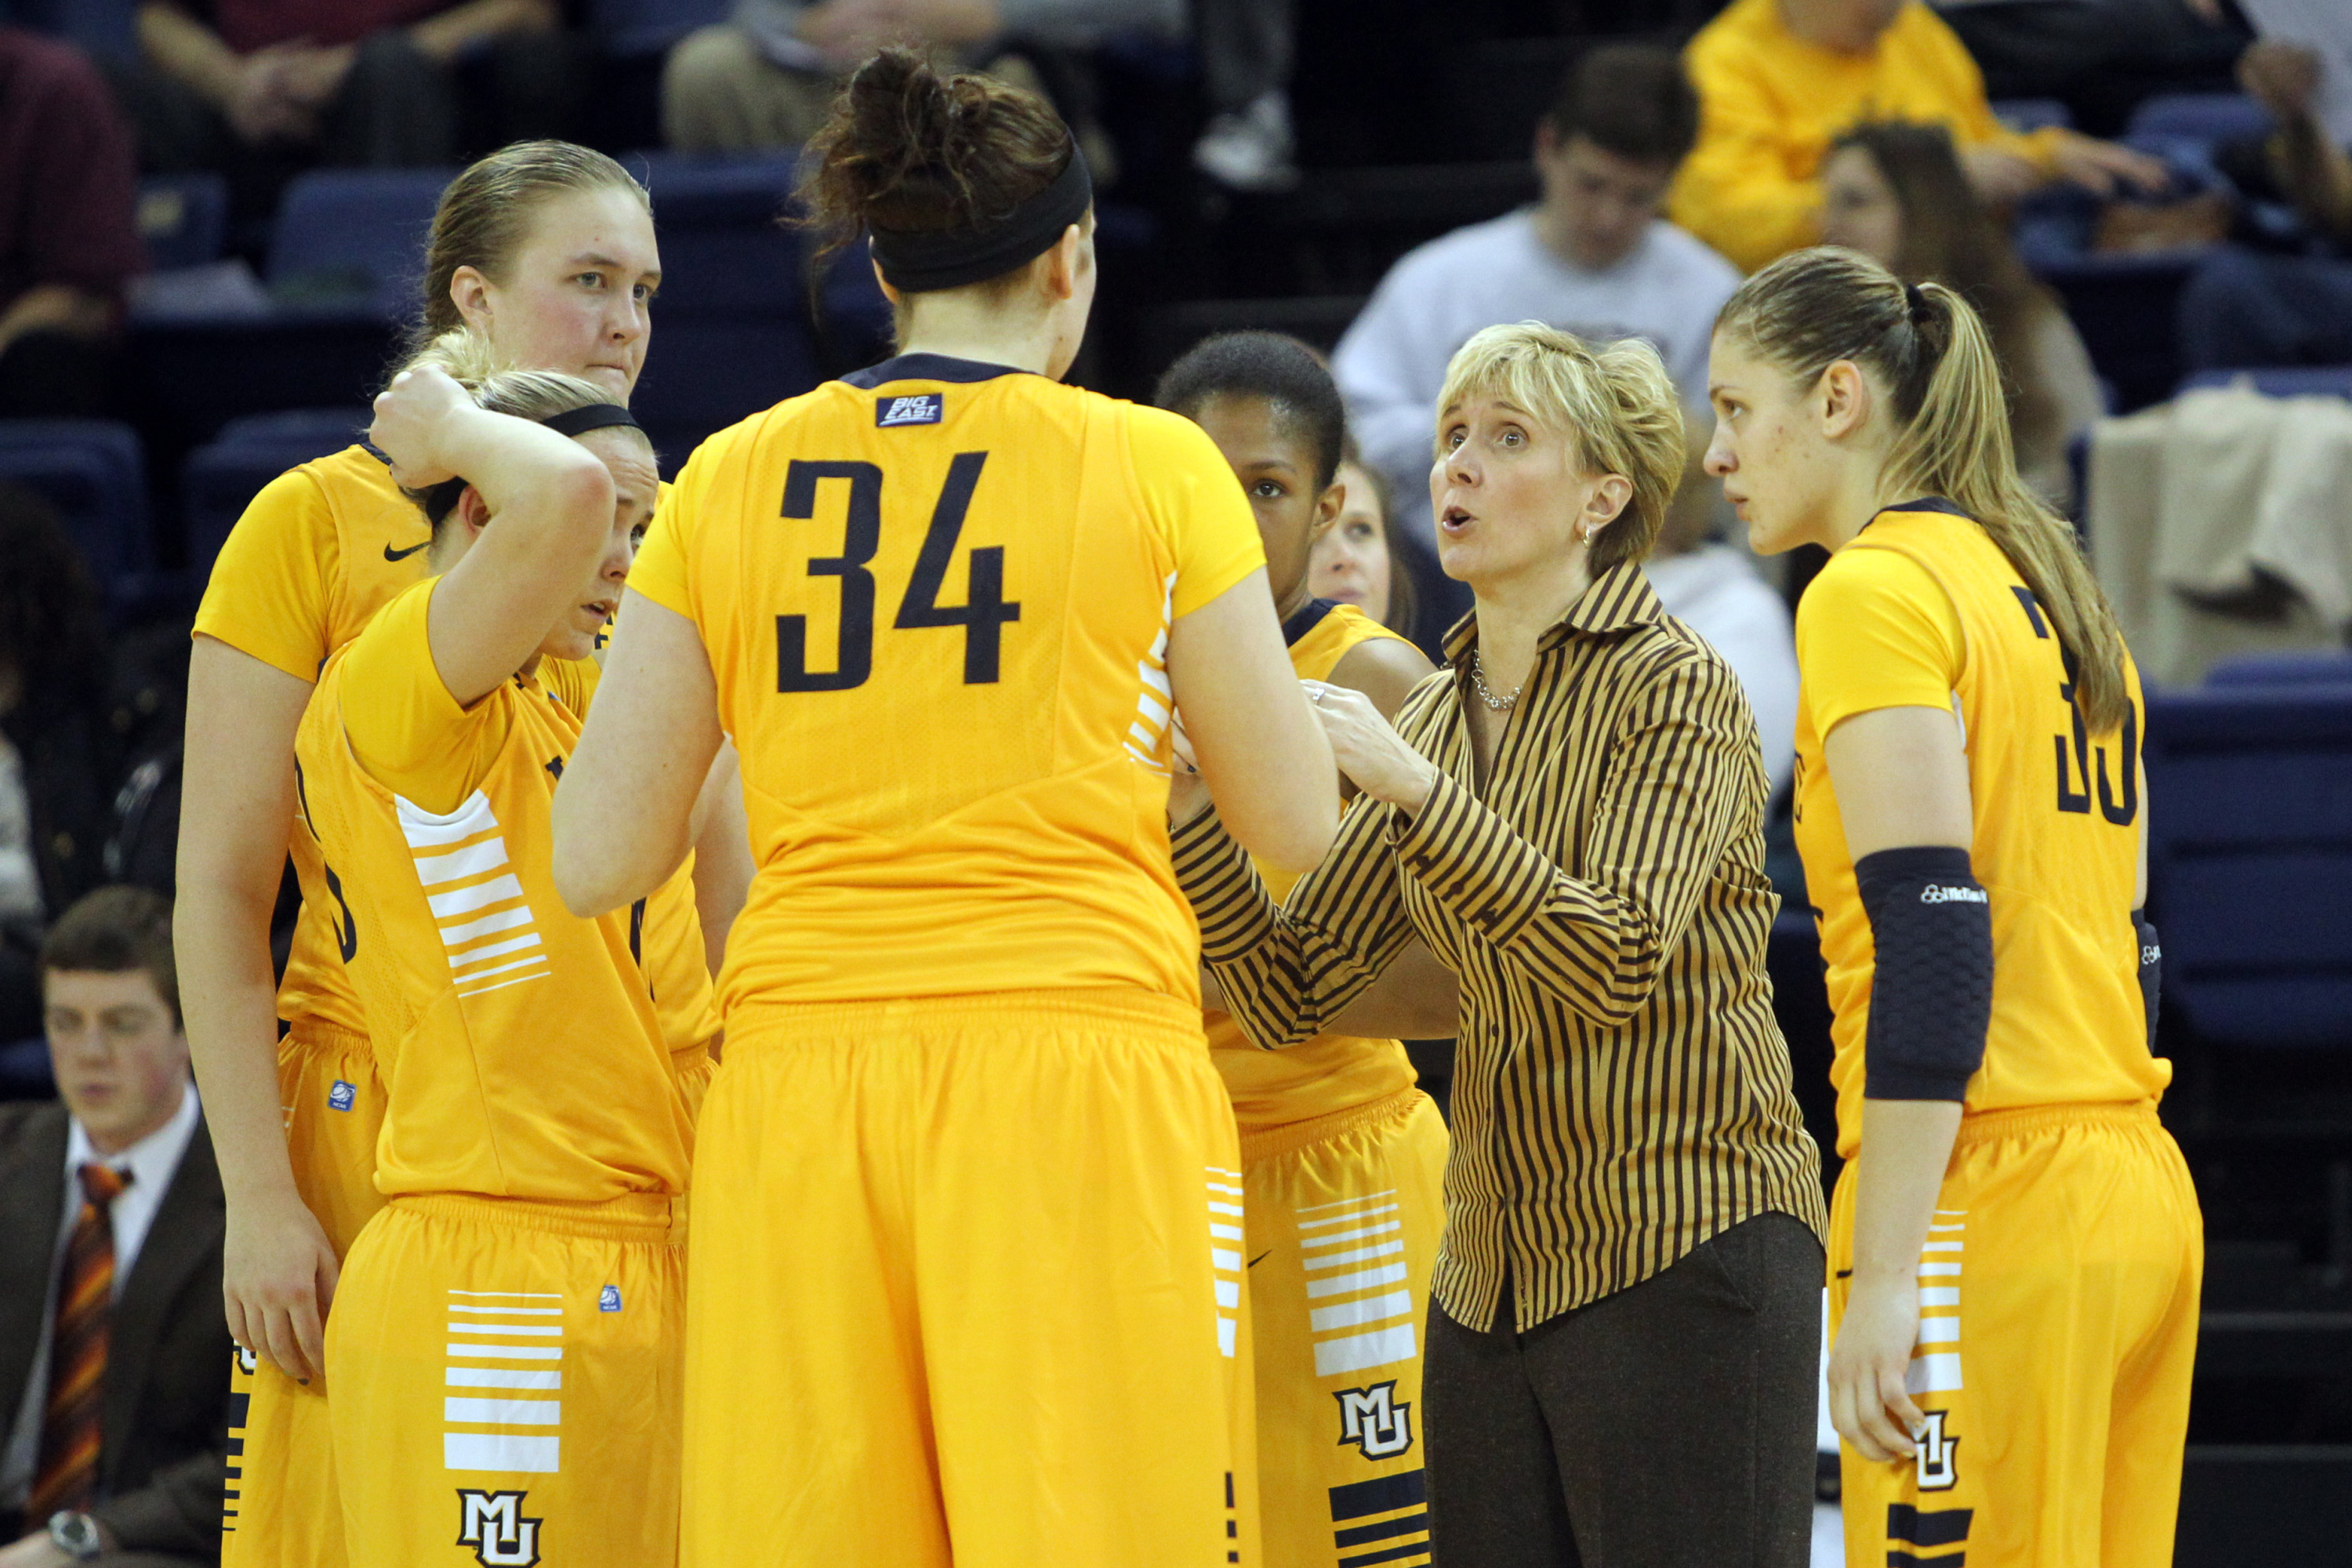 Head coach Terri Mitchell and the Golden eagles will face Seton Hall twice in February